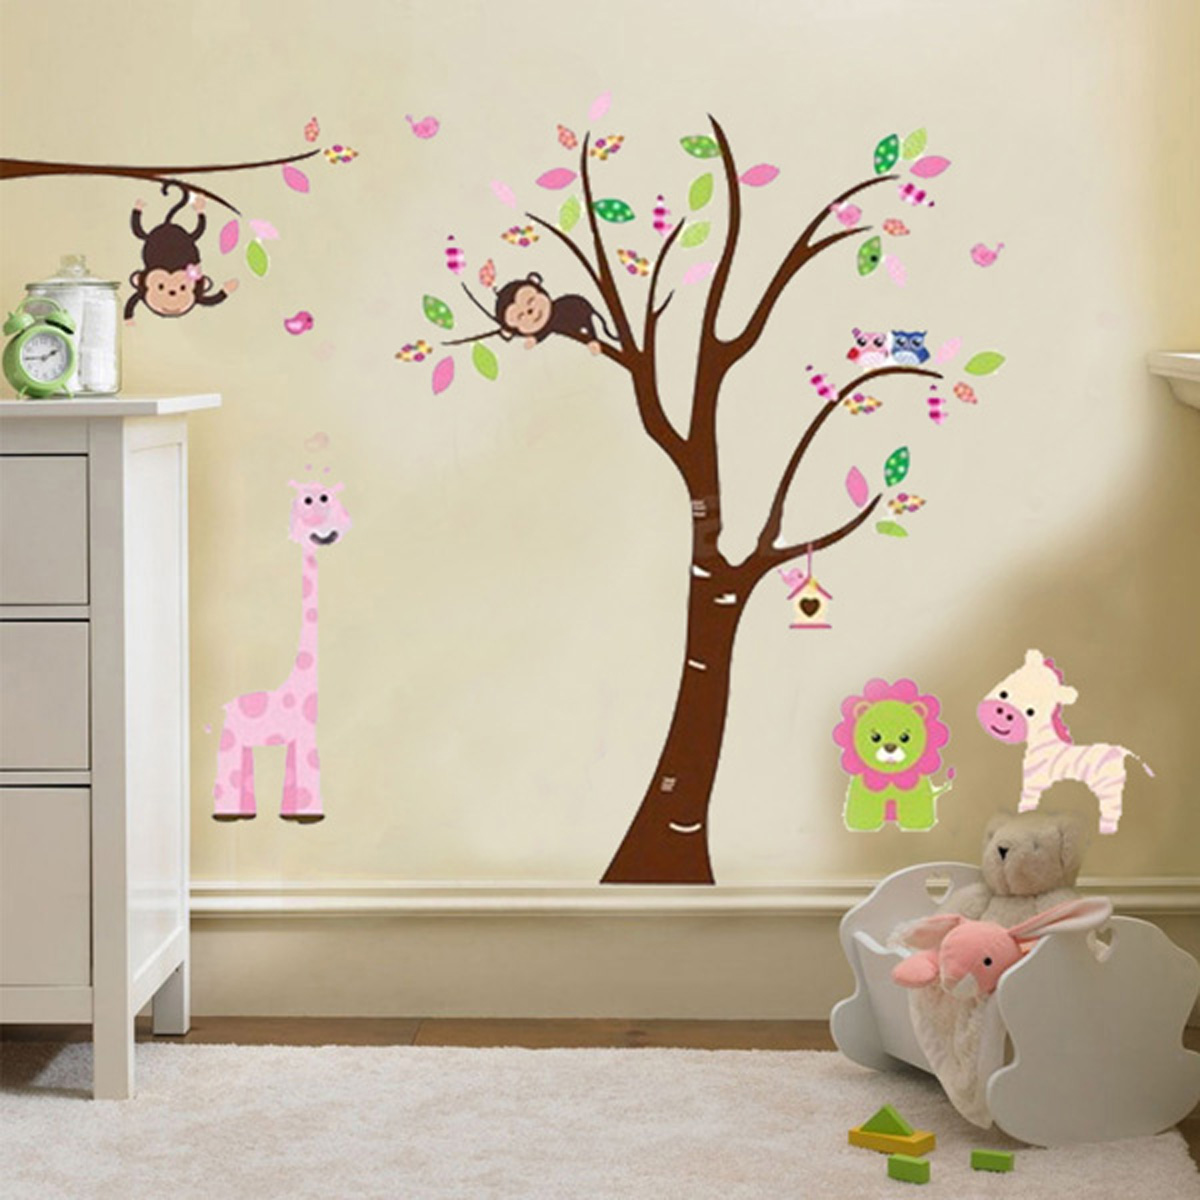 Dessin animal arbre sticker mural autocollant amovible for Dessin mur